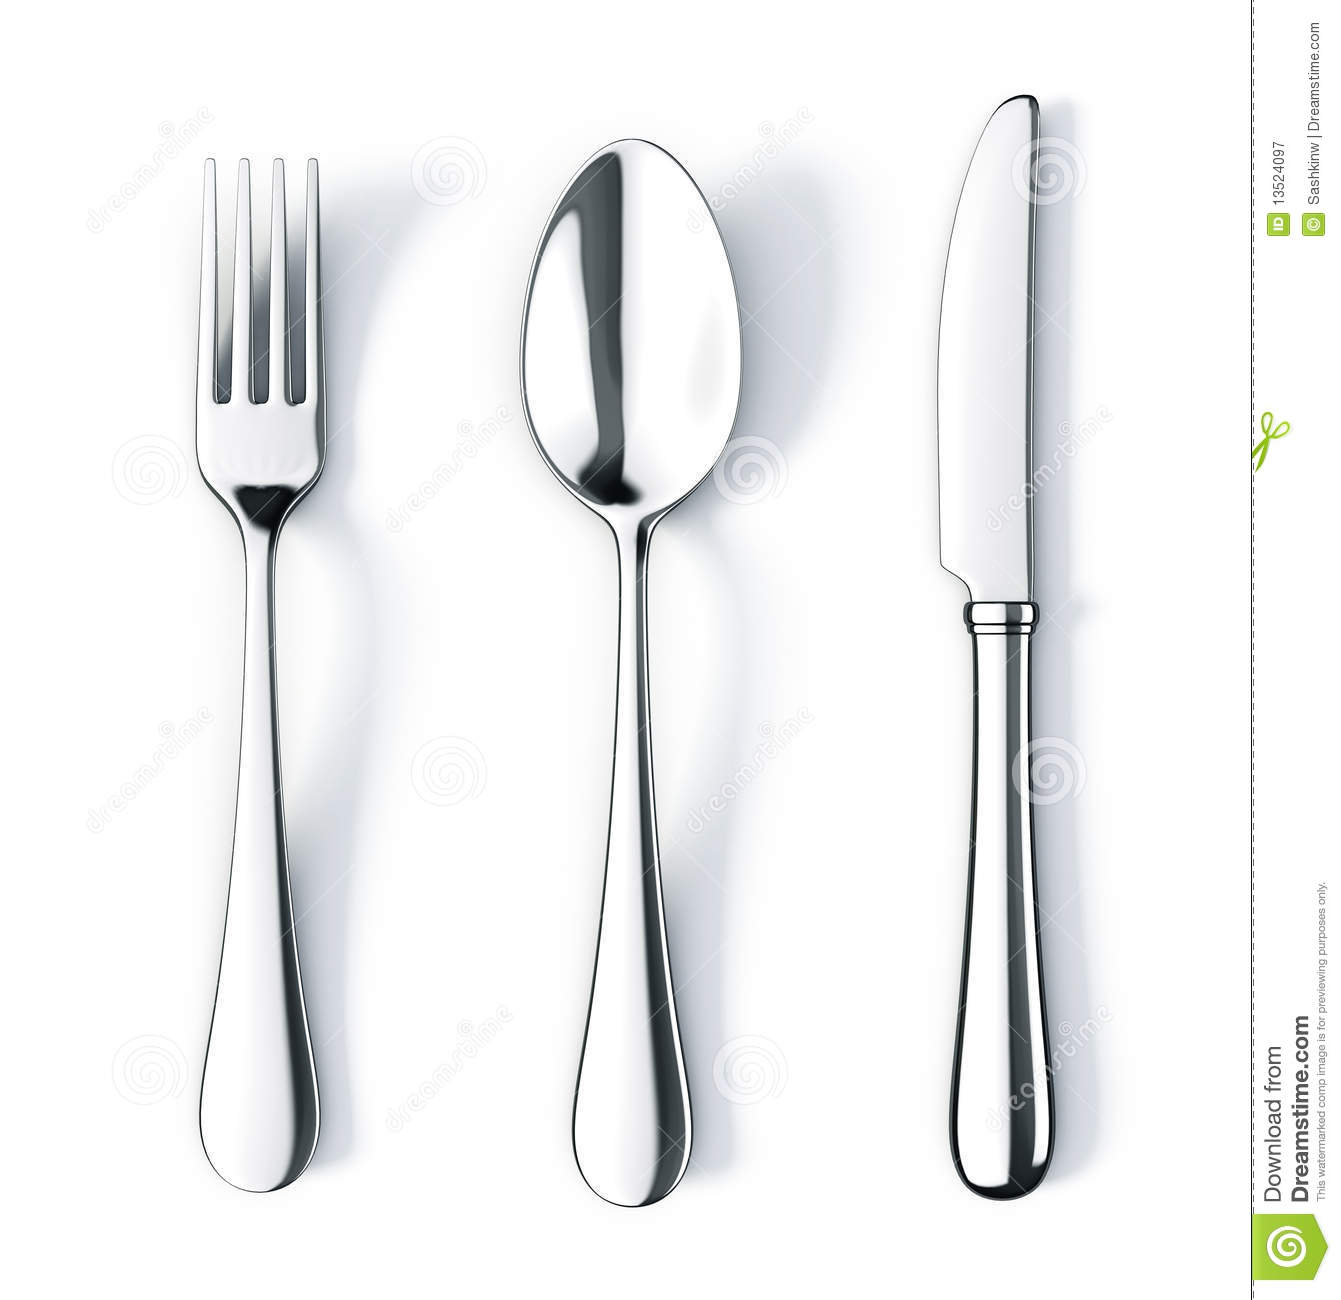 Sketch Floor Plans Fork Spoon And Knife Royalty Free Stock Photography